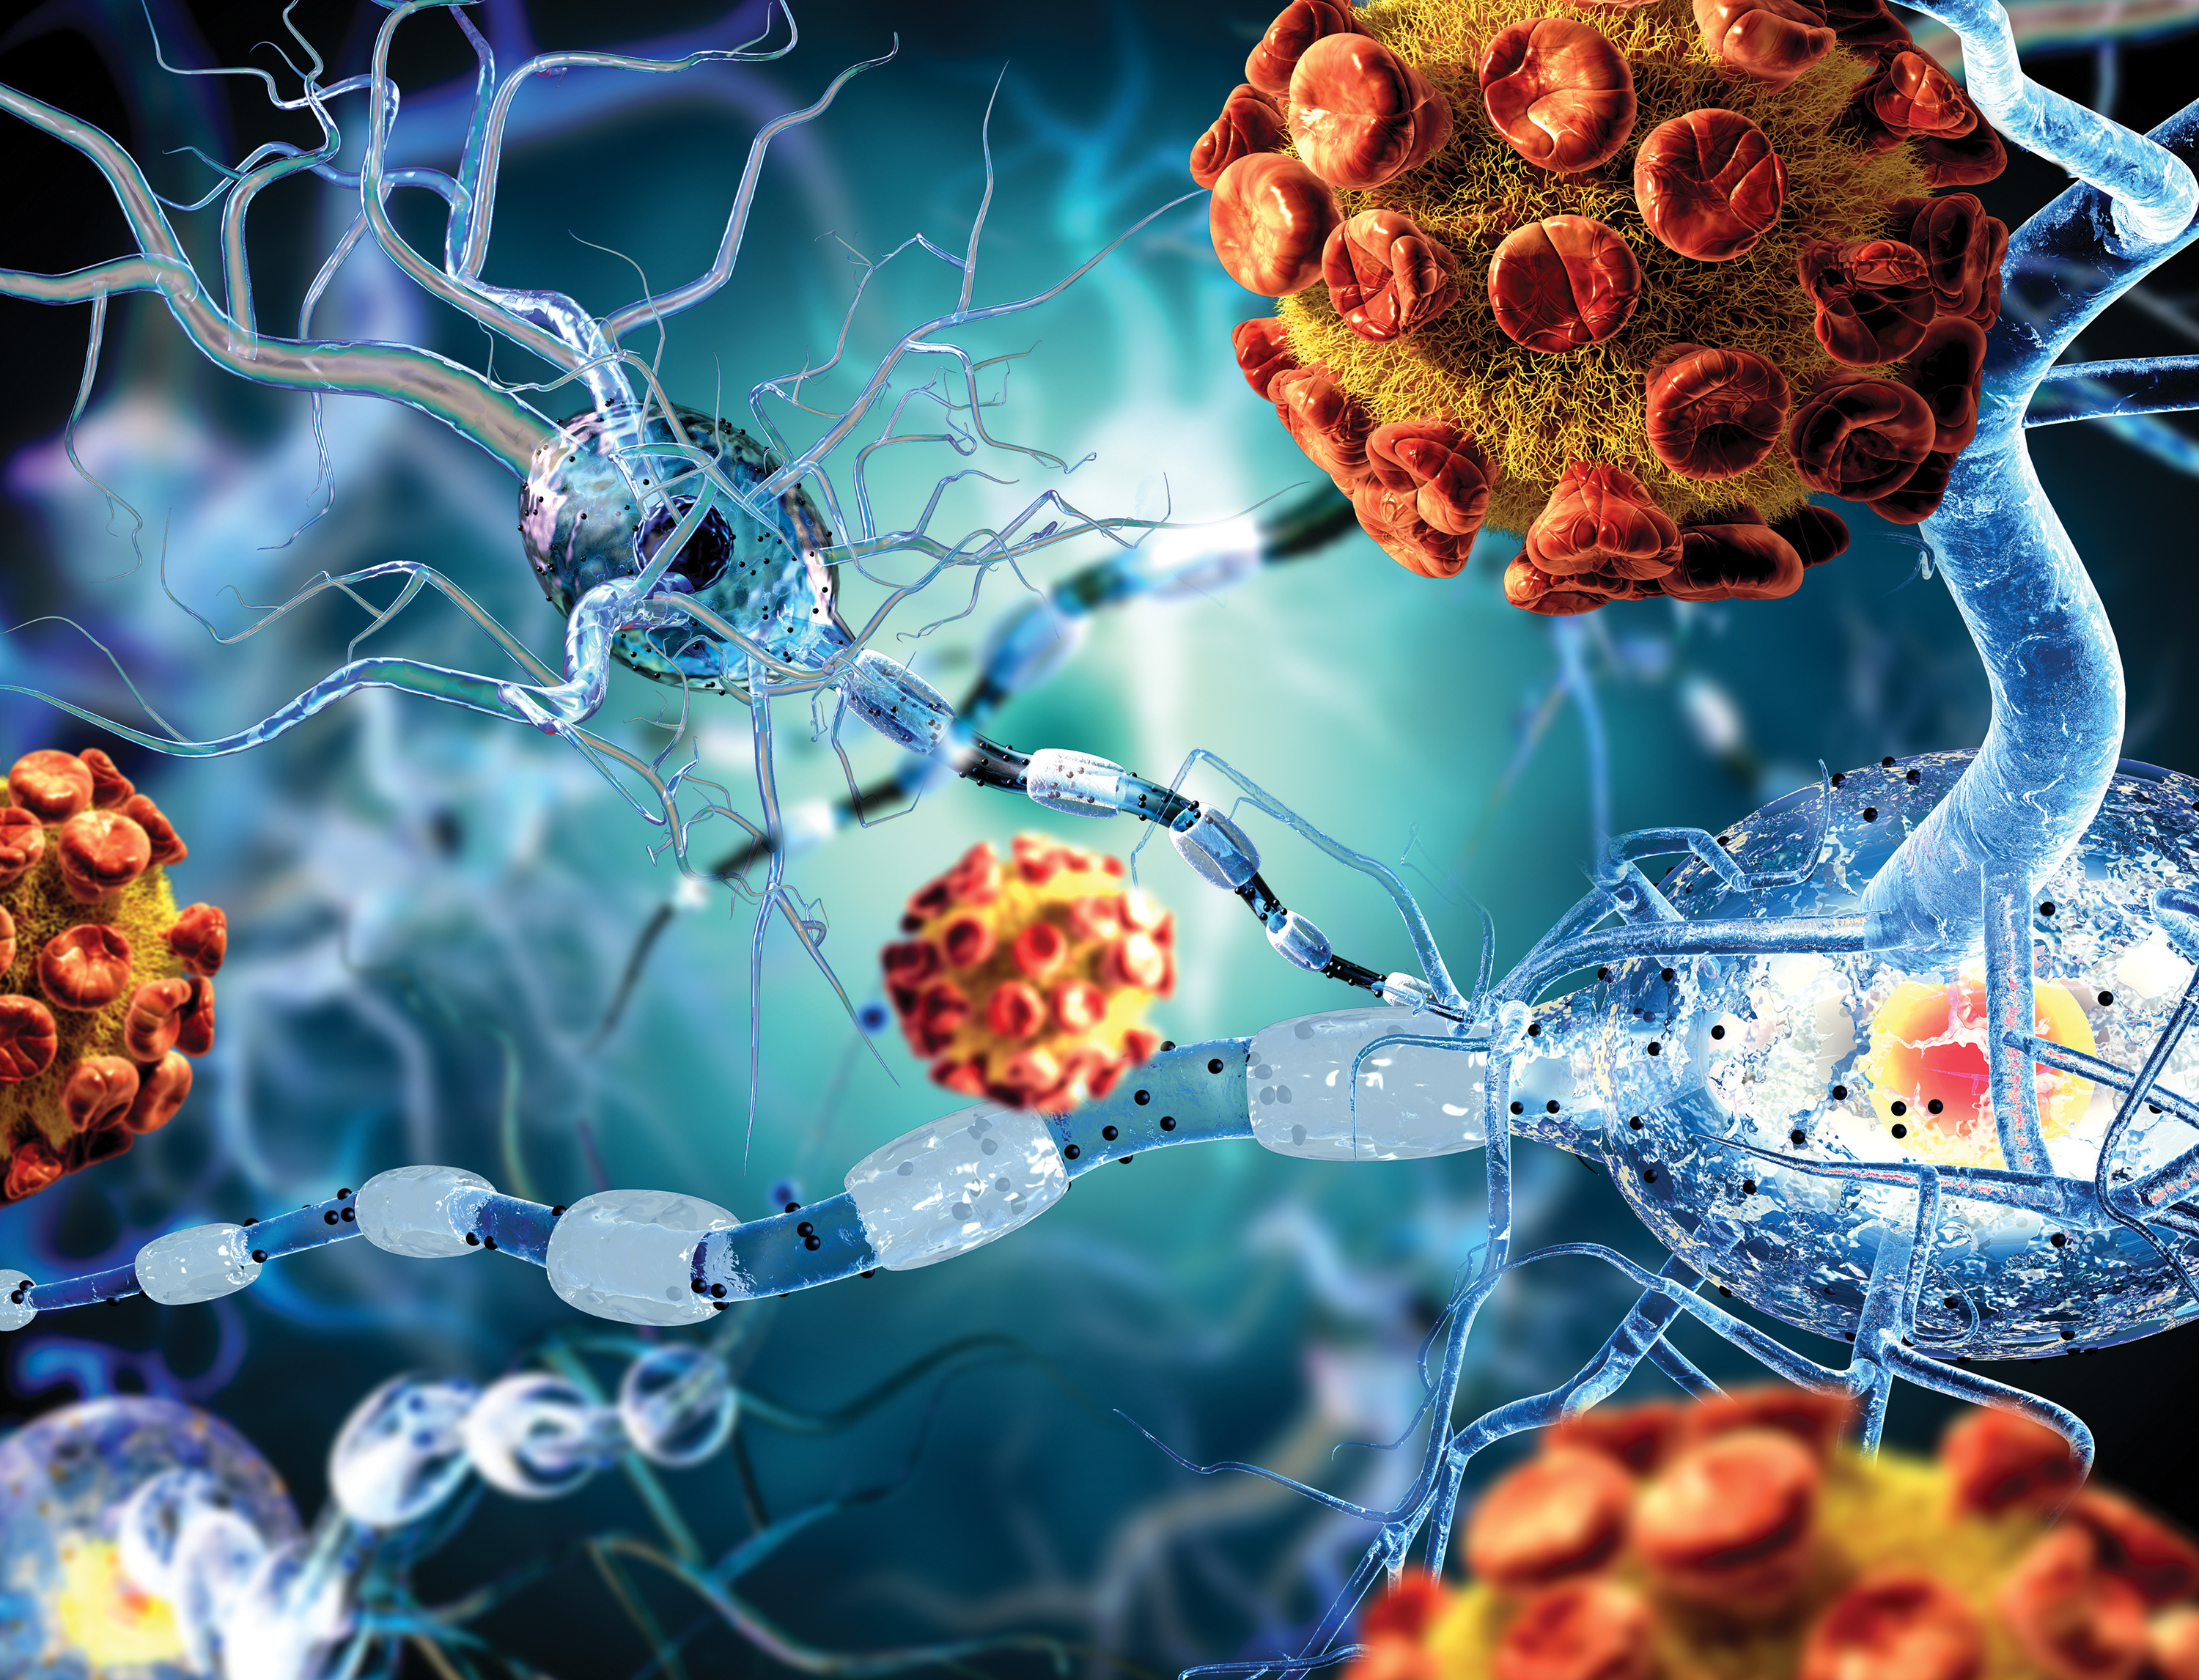 An autoimmune disease, unfortunately, defines conditions in which the immune system attacks the host, sometimes in life-threatening ways